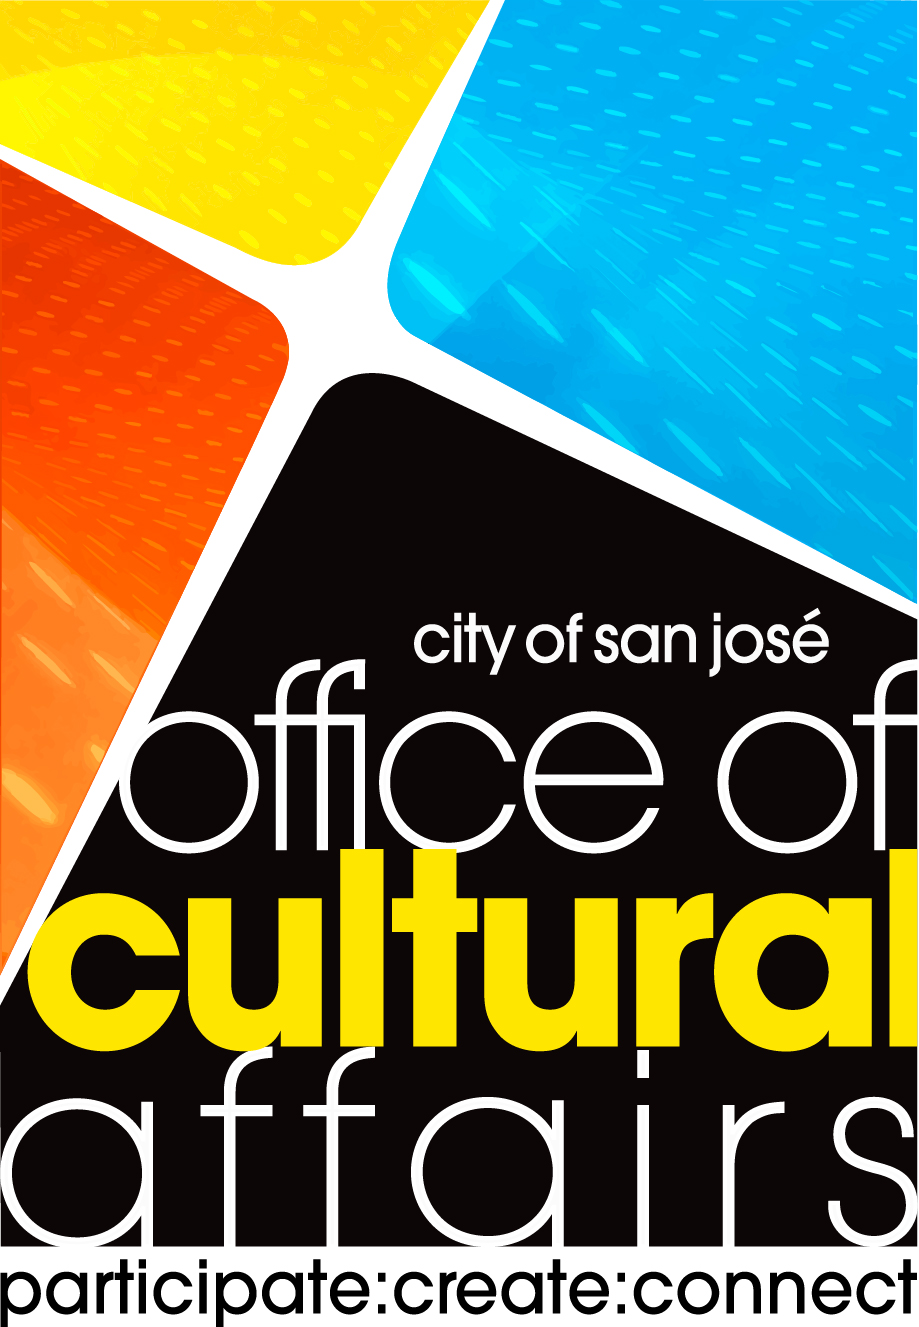 City of San Jose Office of Cultural Affair's Logo